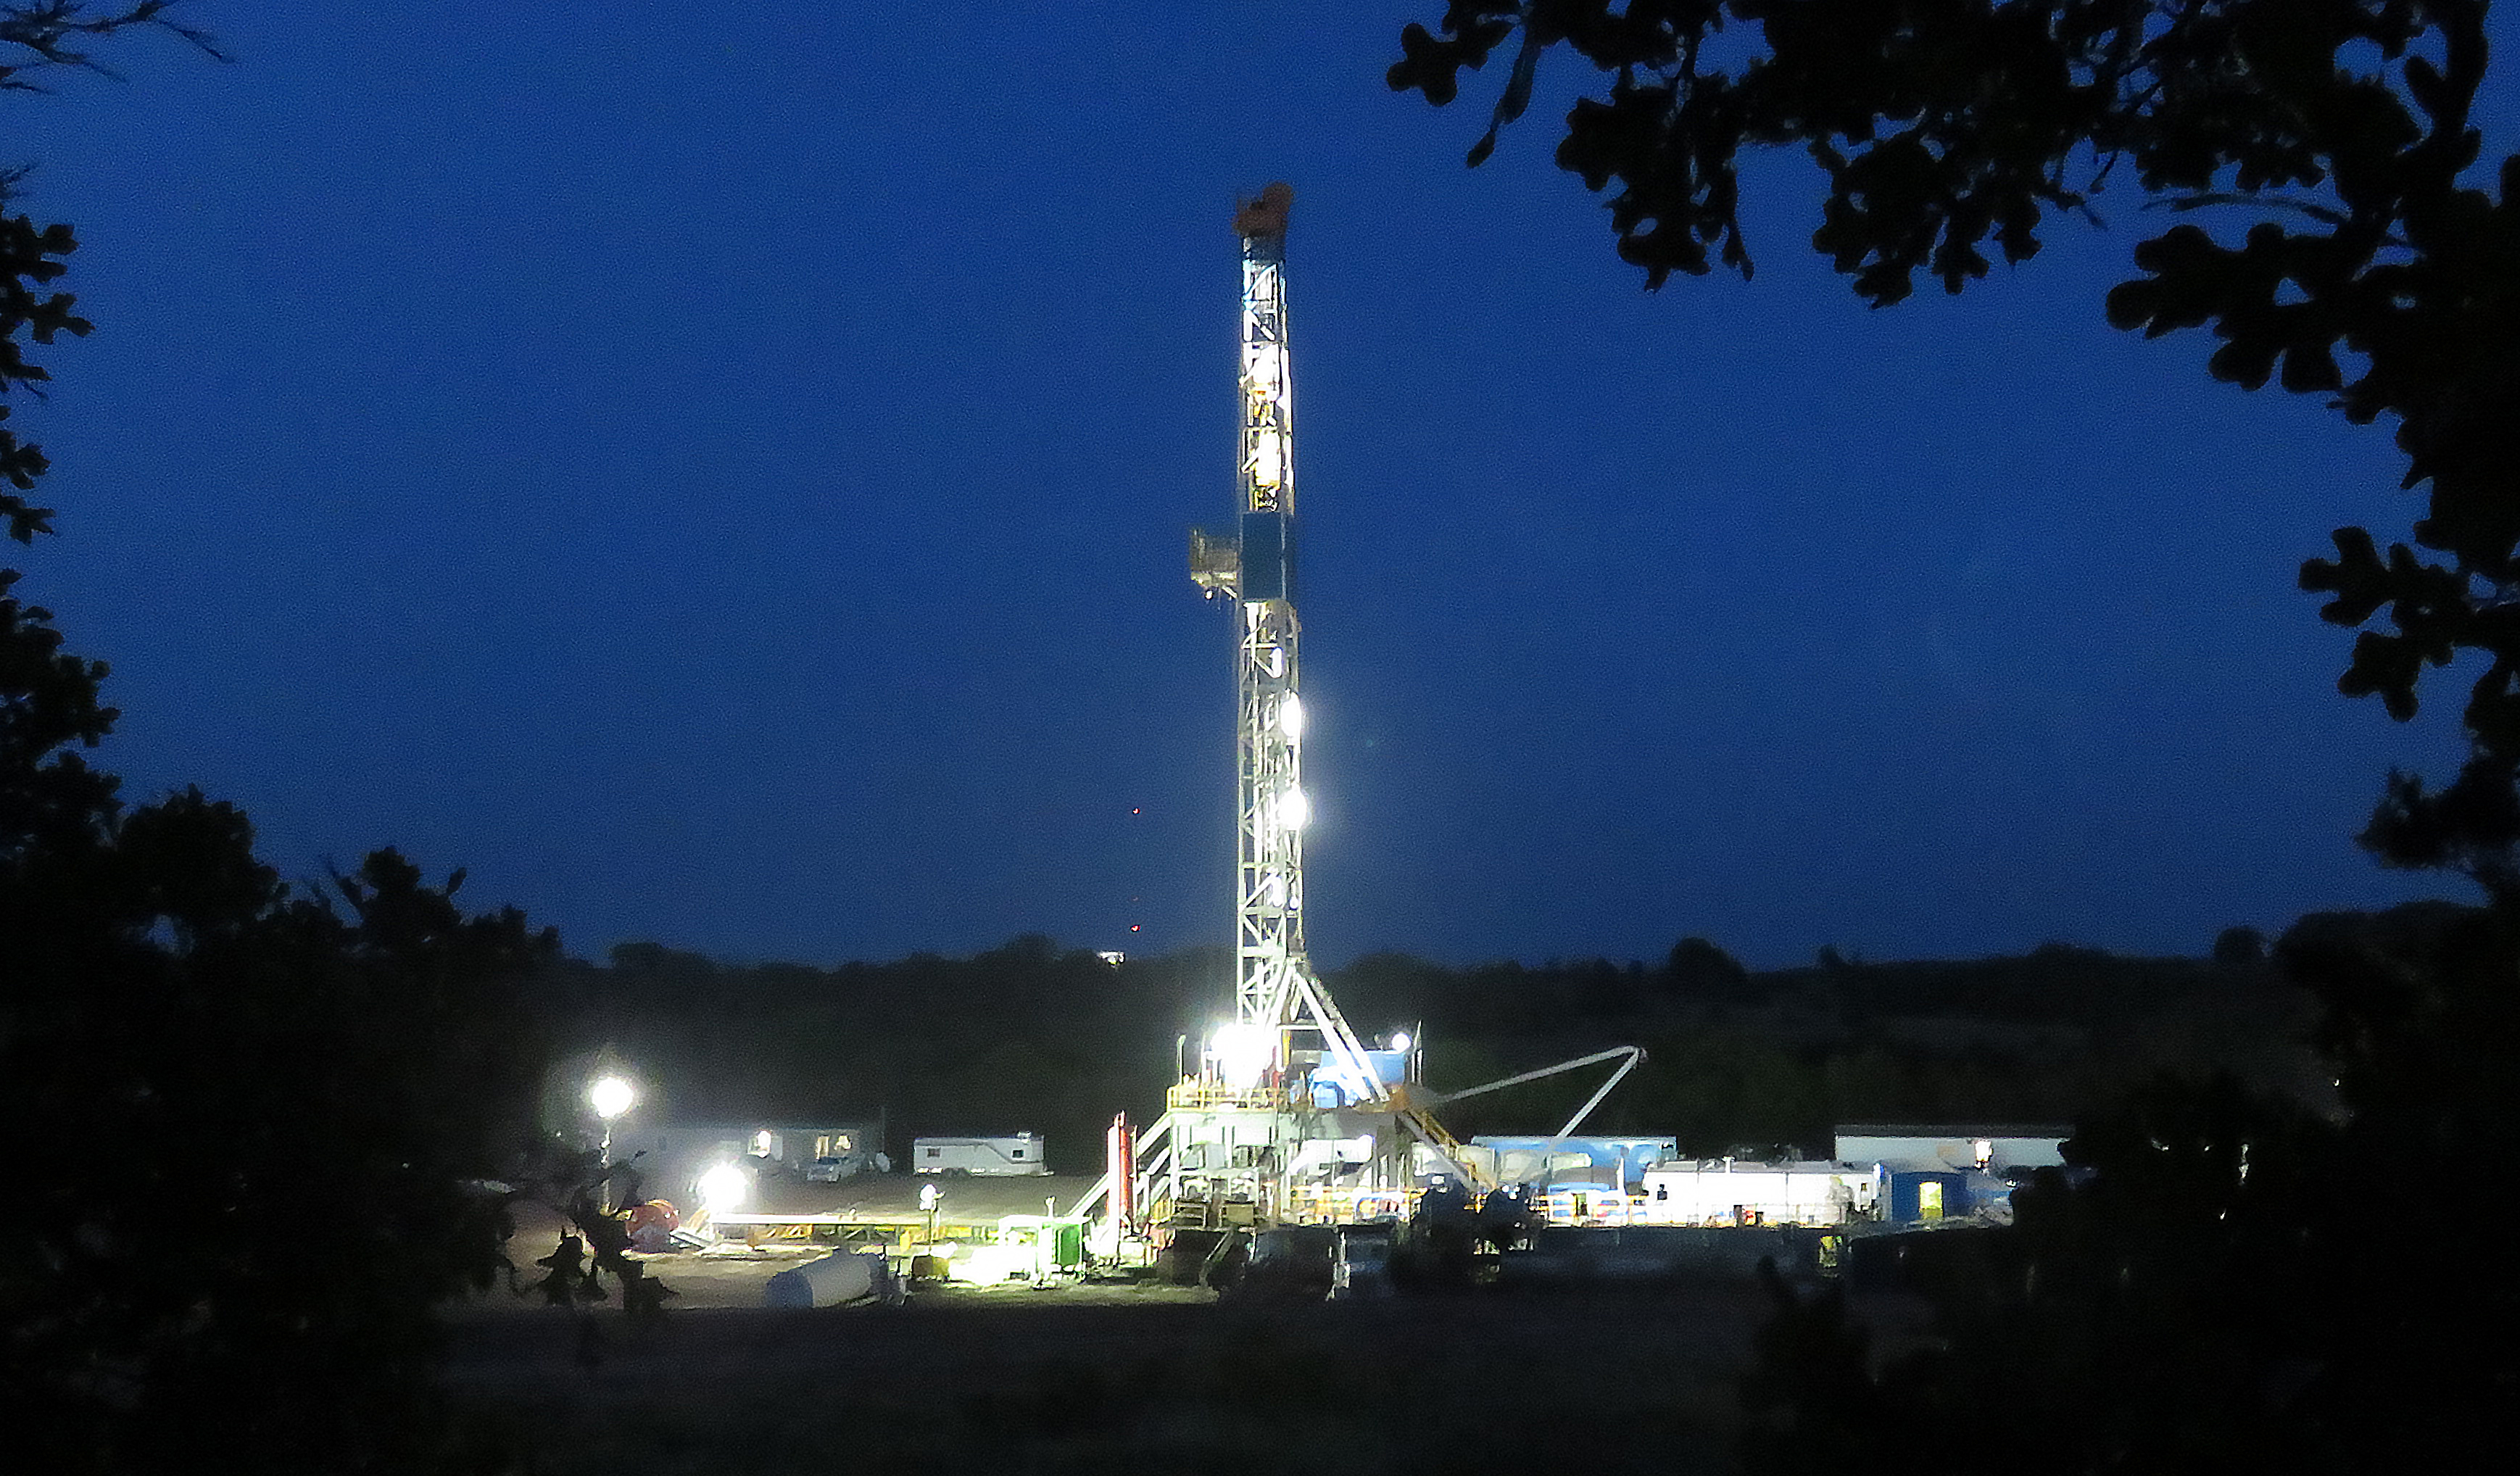 Rig-32-AEW-evening-June-3rd-2015-013a